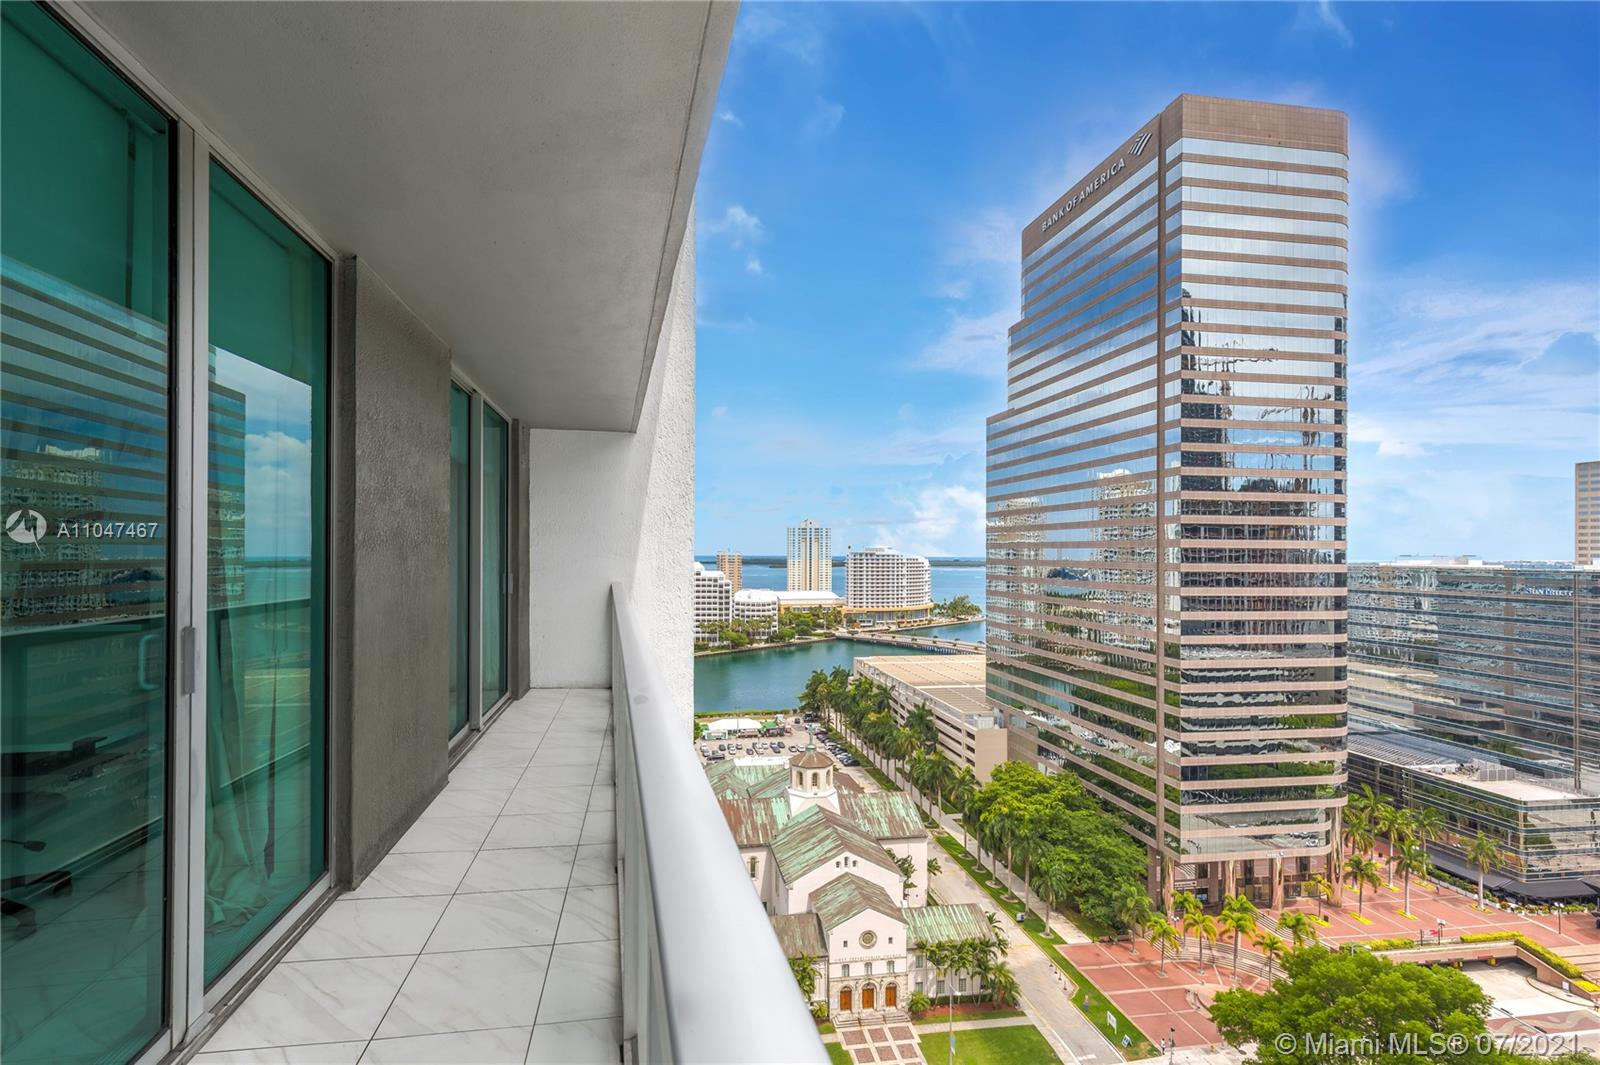 Amazing city and bay views! Gorgeous condo in the heart of Brickell!!! Impeccable 1 BED/1 BATH unit in the luxury skyscraper of 500 Brickell East Tower. Spacious bedroom with walk in closet and spa bath. Community offers excellent services and luxurious amenities like rooftop infinity edge heated pool, fitness center, spa, clubroom, 24 hrs. security and more. Perfect location close to shops near Brickell City Center, Mary Brickell Village, Metro Mover, Metro Rail and major highways. A MUST SEE!